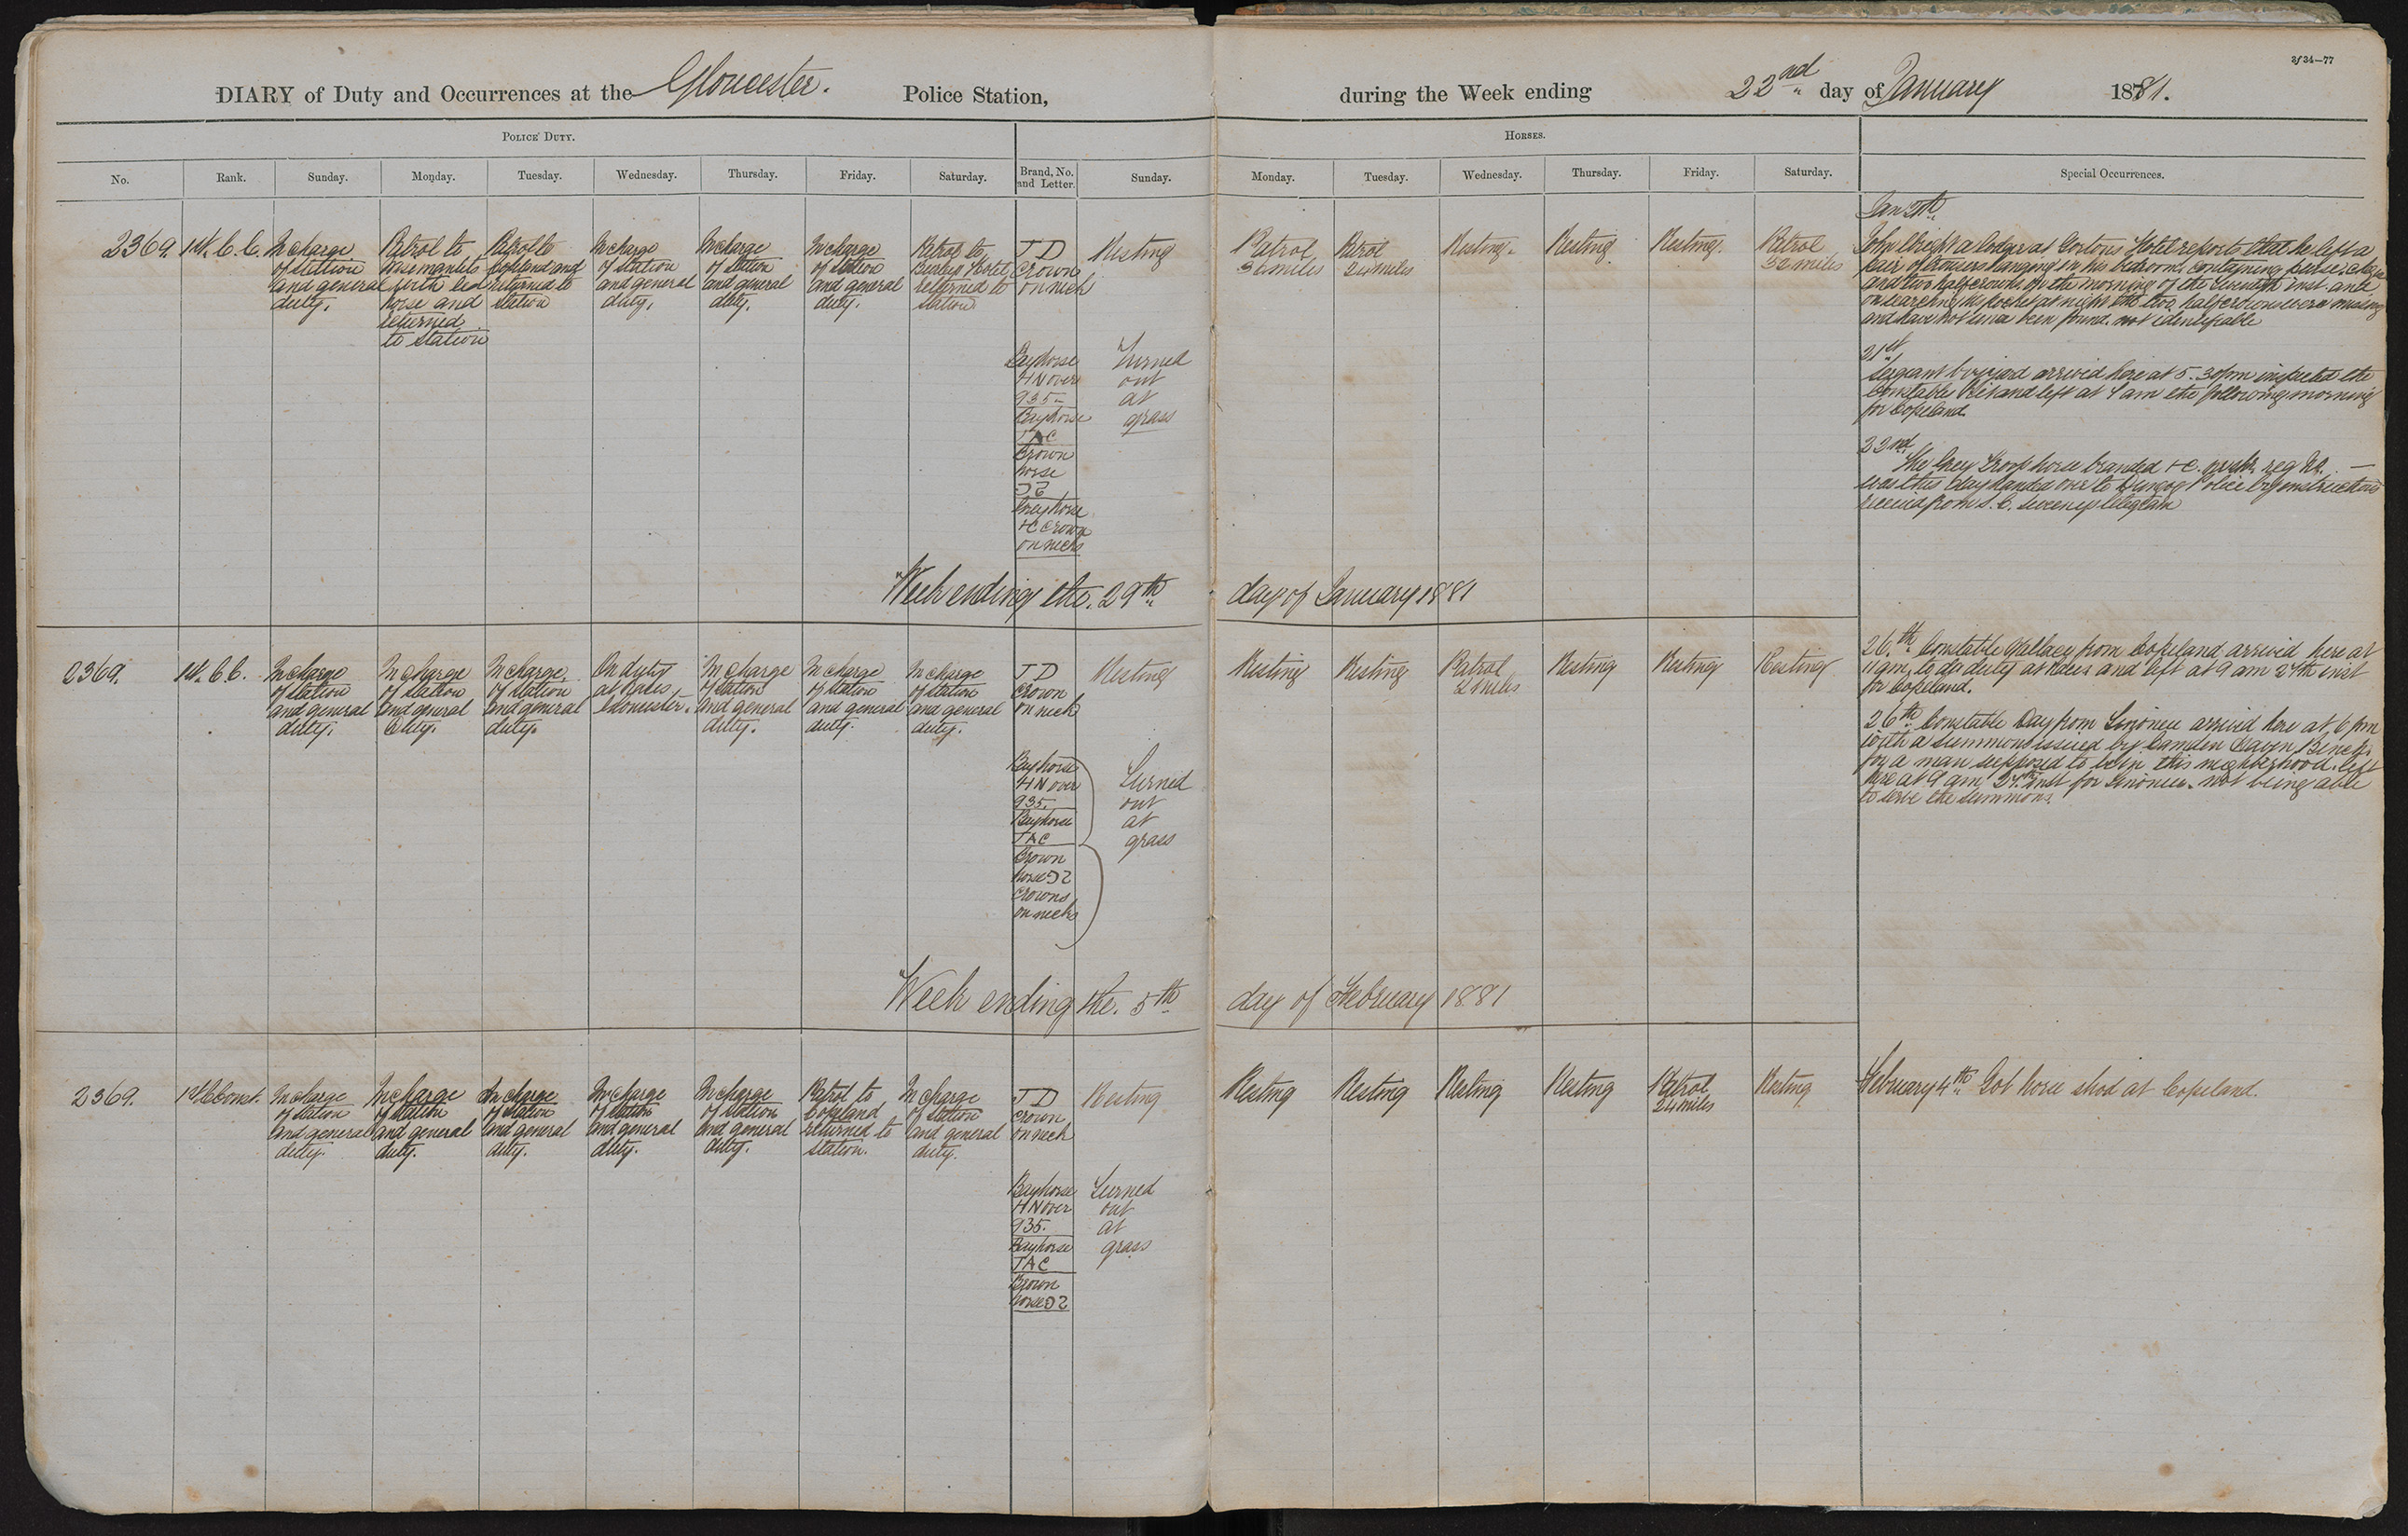 Diary of duty and occurrences at the Gloucester Police Station during the week ending the 22nd day of January 1881